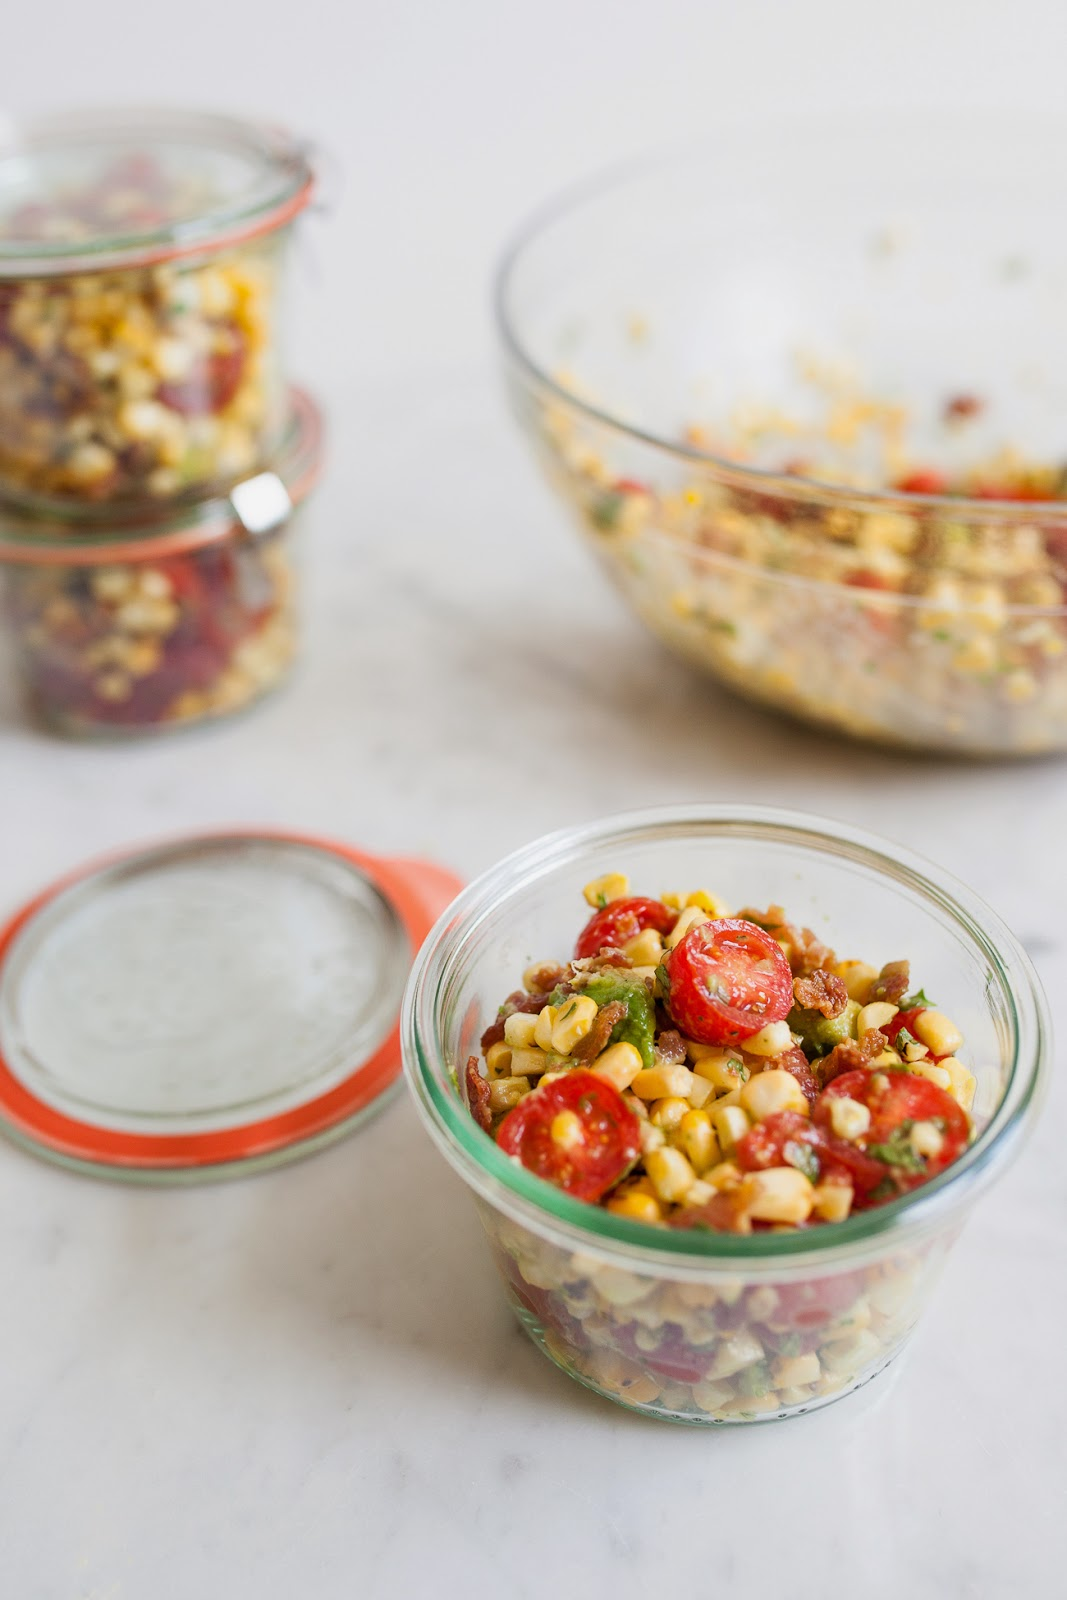 Bacon, Corn, Avocado and Tomato Salad #sweetsurprisesweeps / blog.jchongstudio.com